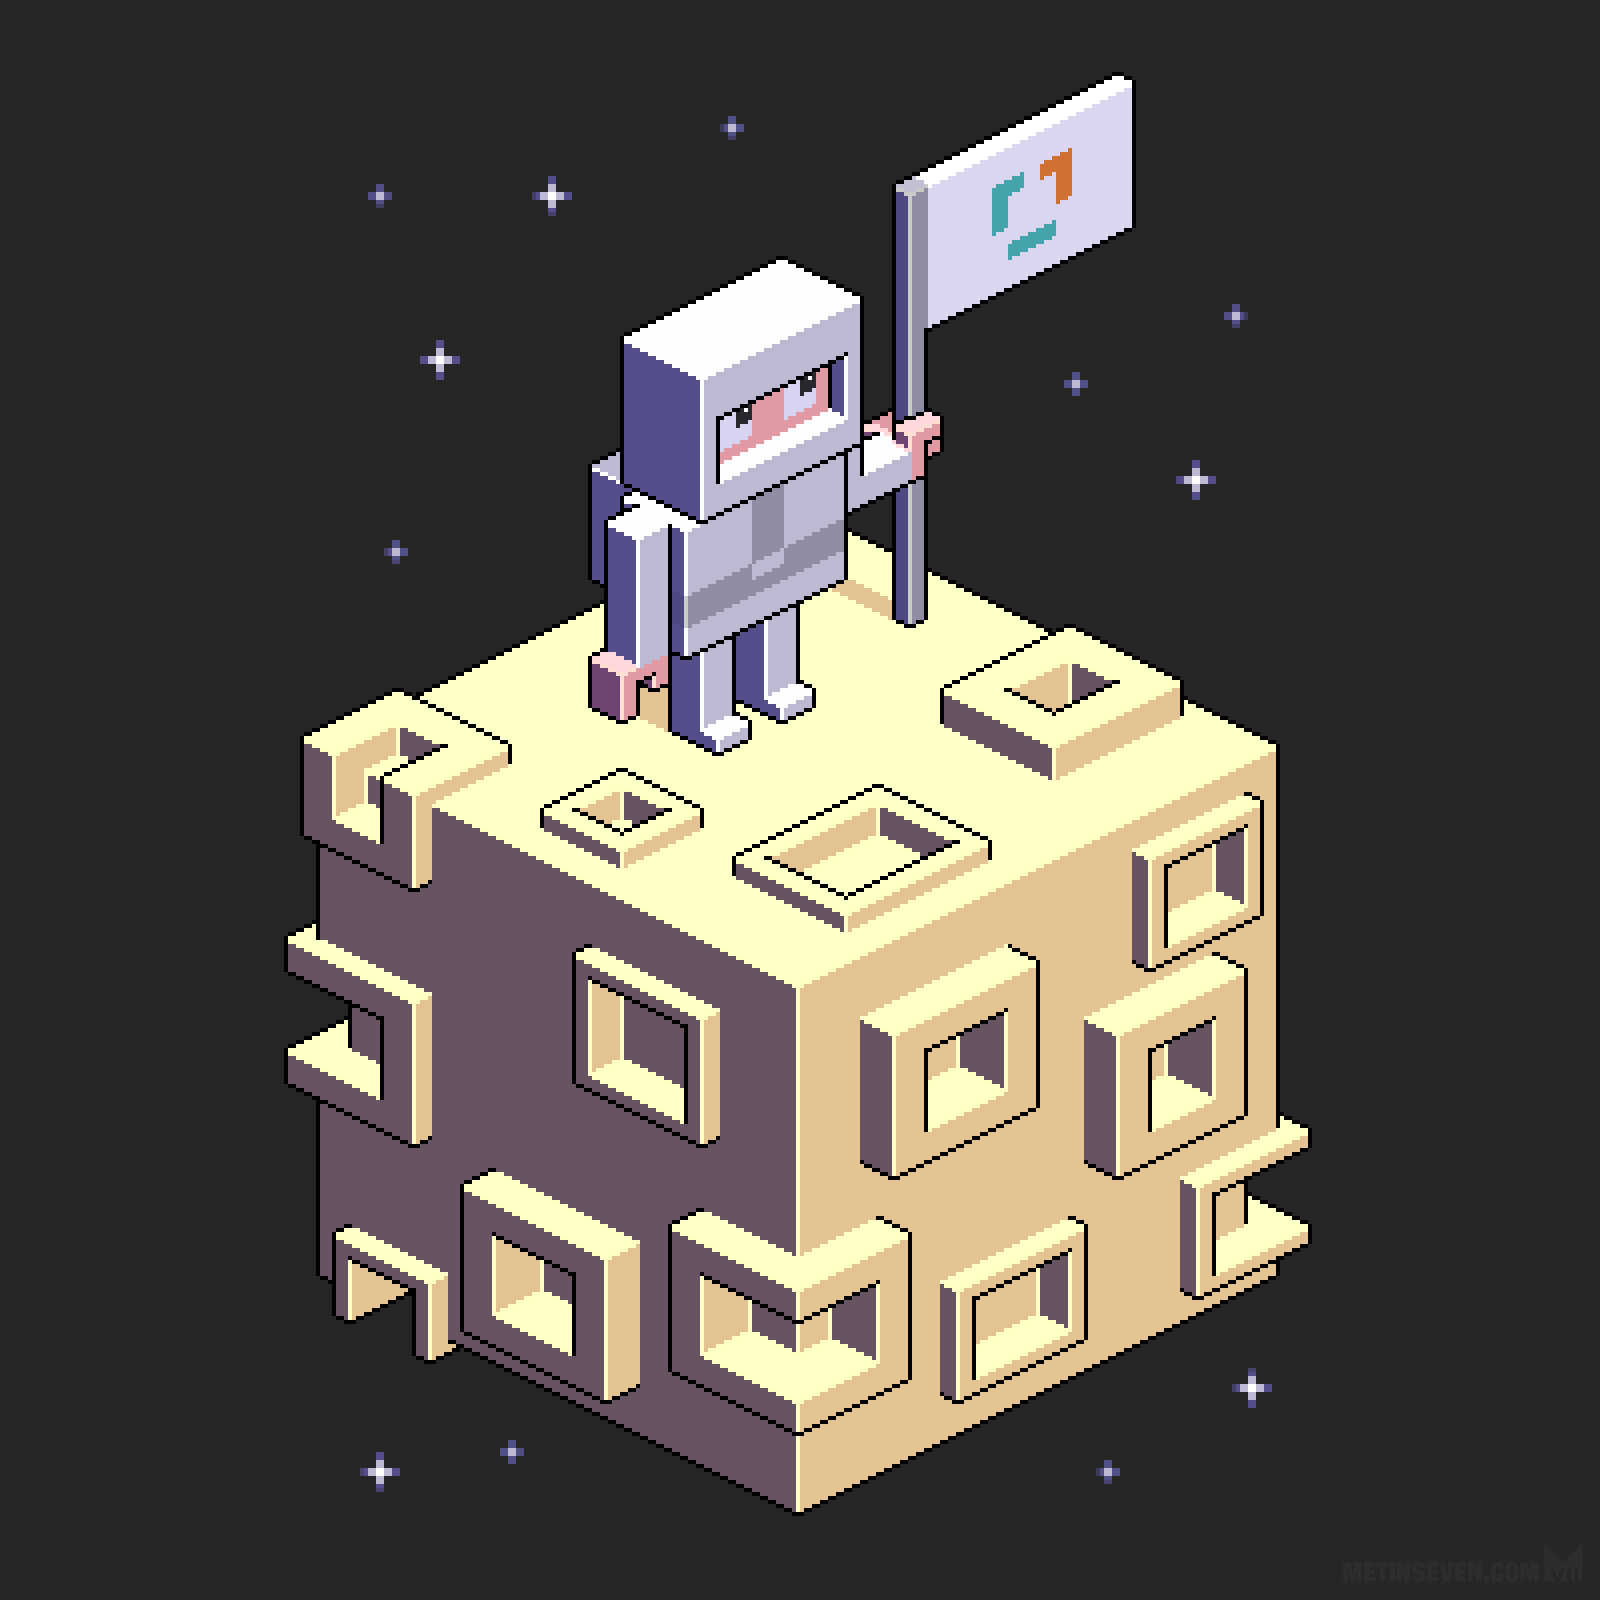 Isometric pixel illustration of an astronaut on a moon, for an EclecticIQ sticker series